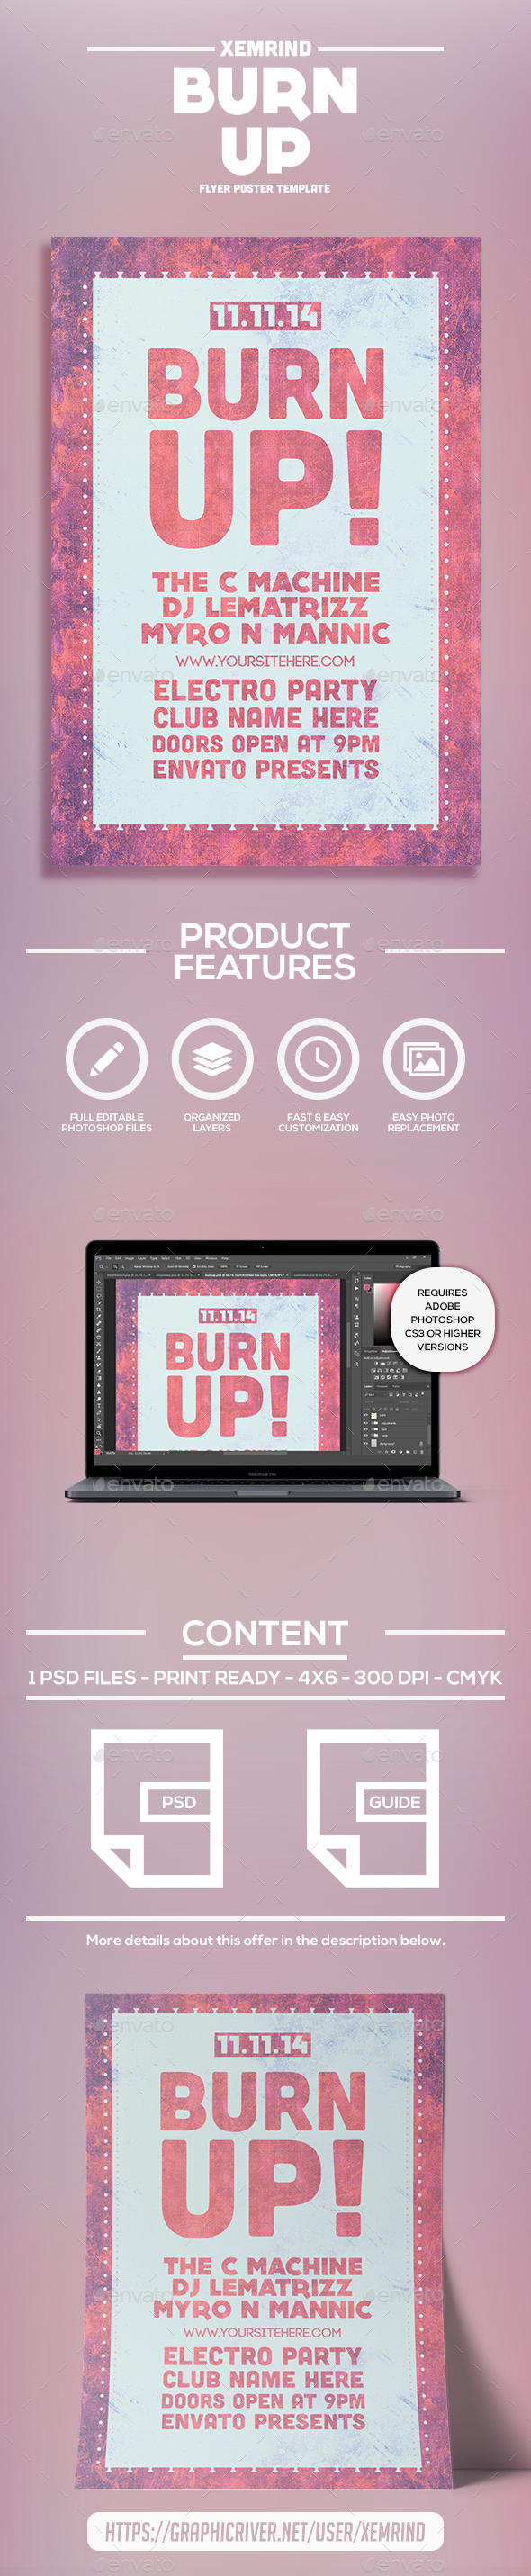 Burn Up Flyer Template - Clubs & Parties Events